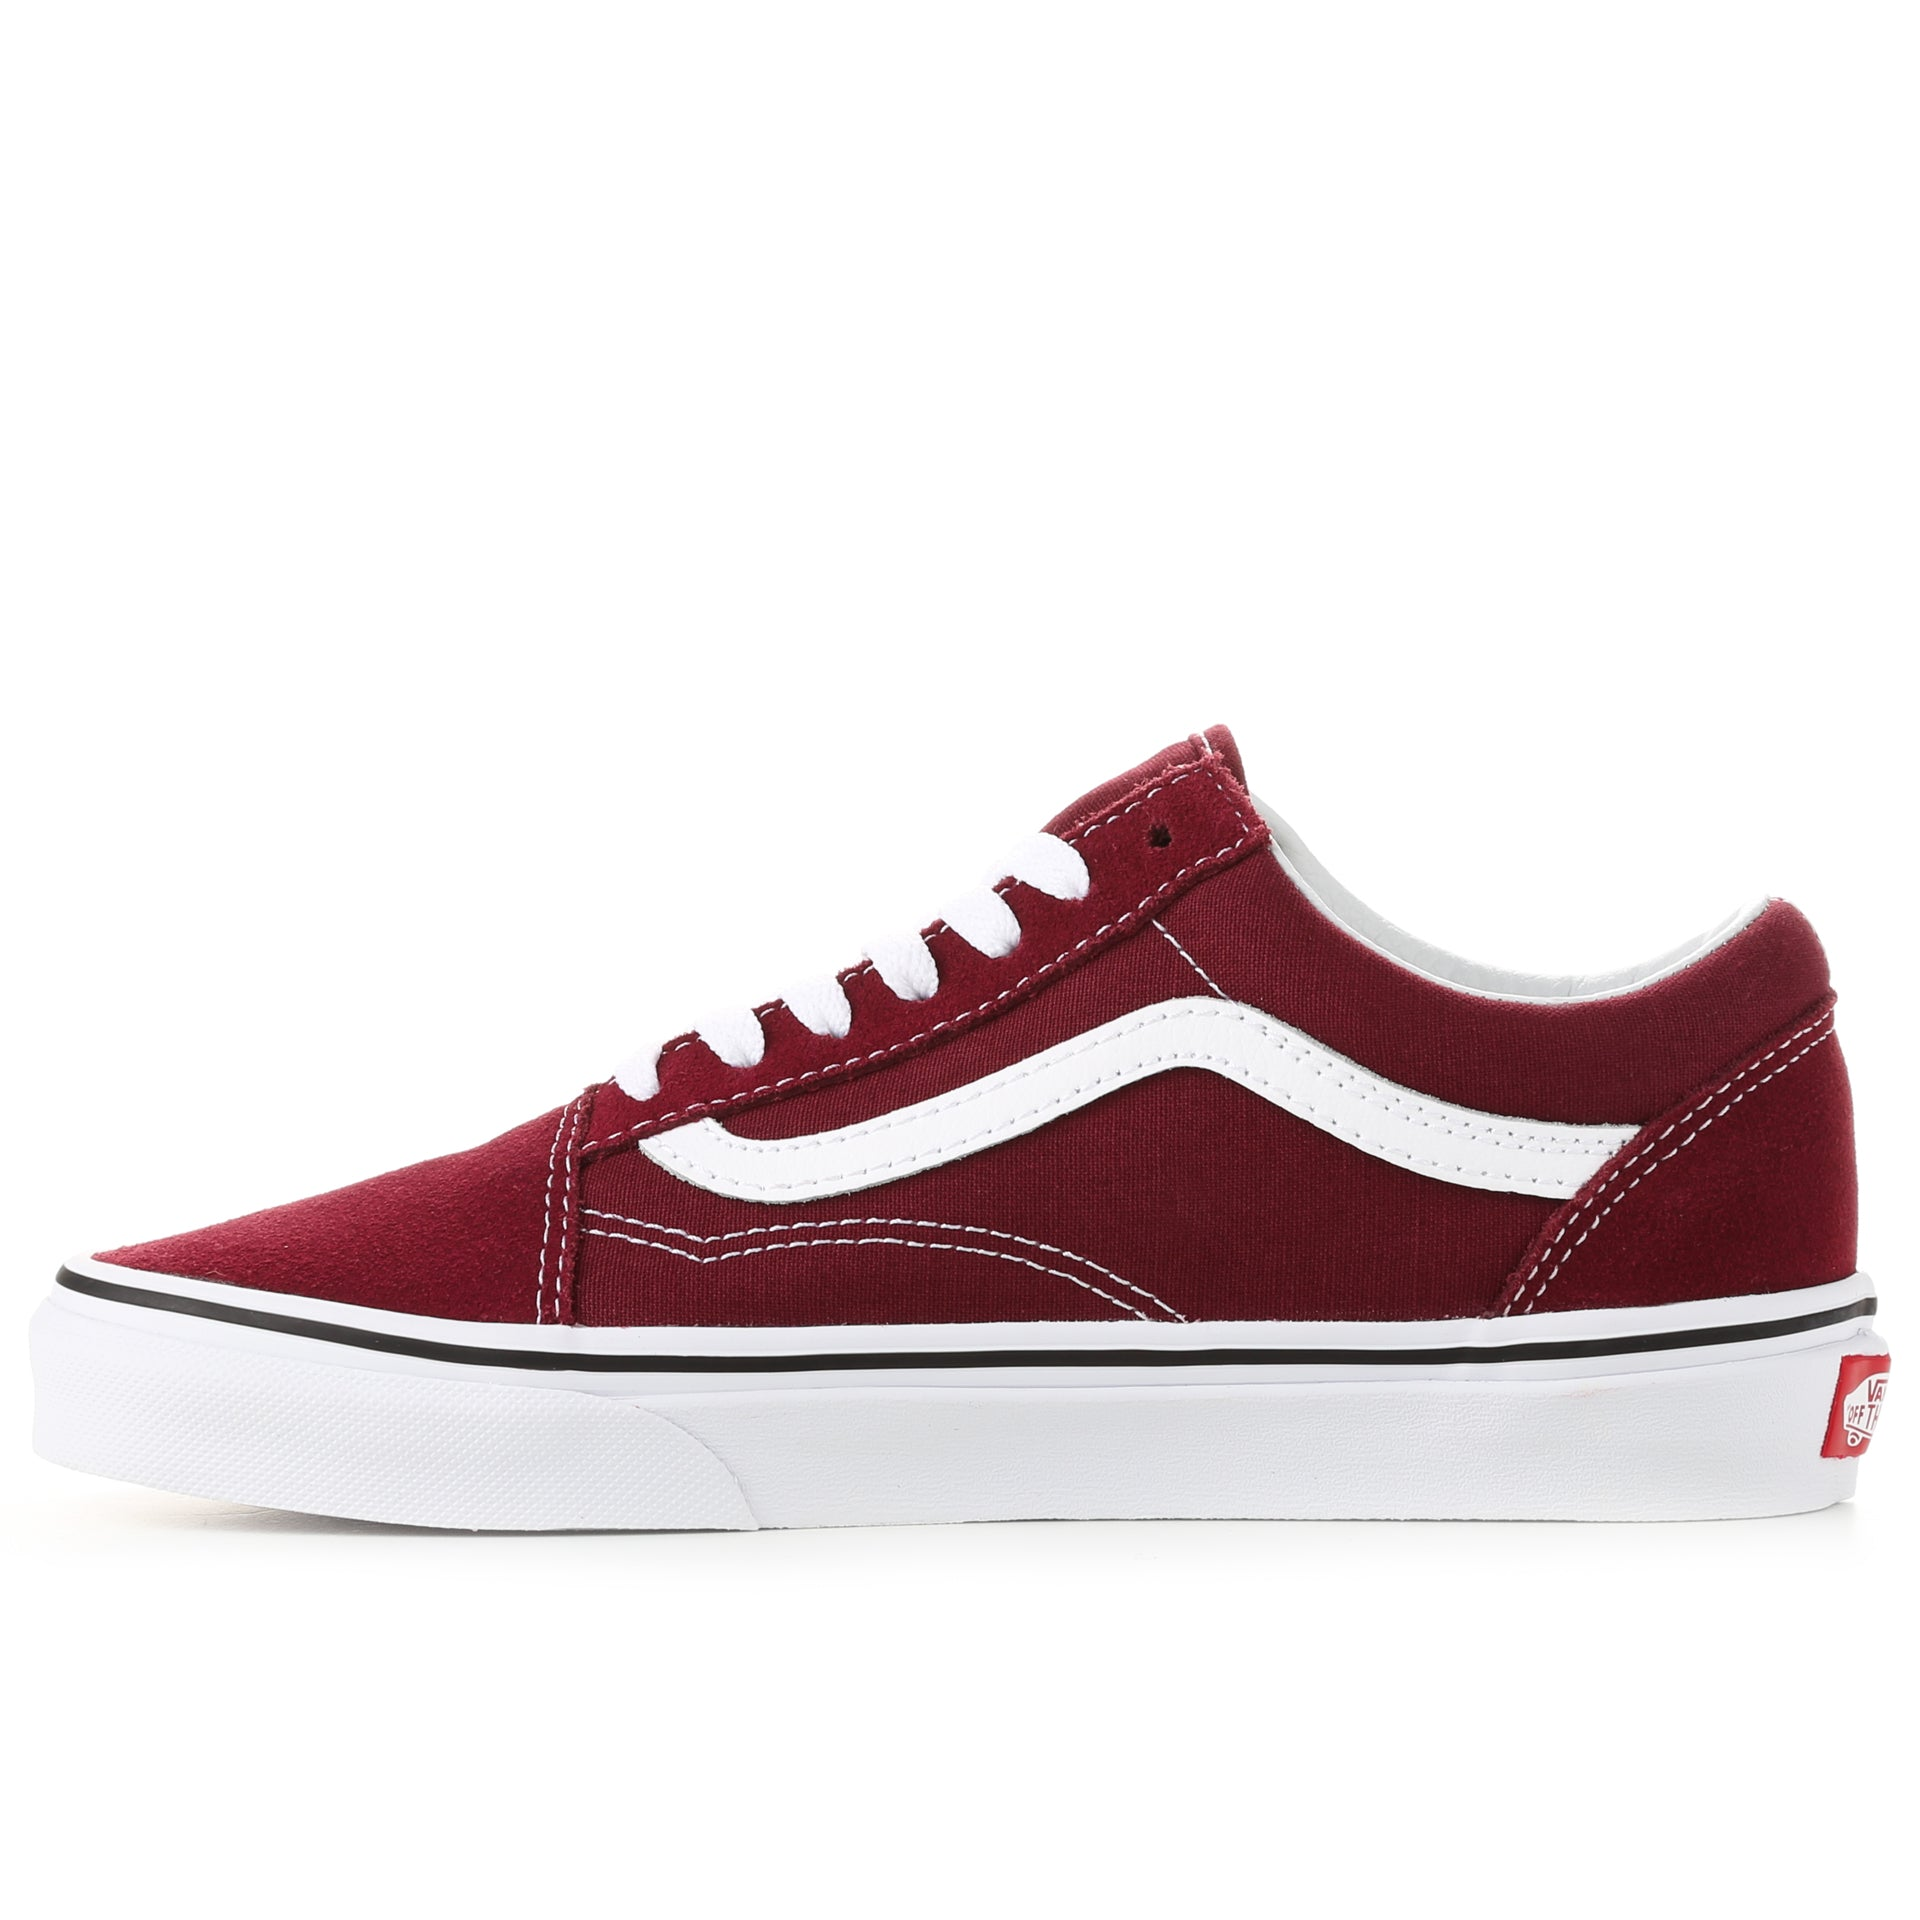 Vans Old Skool - Burgundy True White - New Star ed10825db